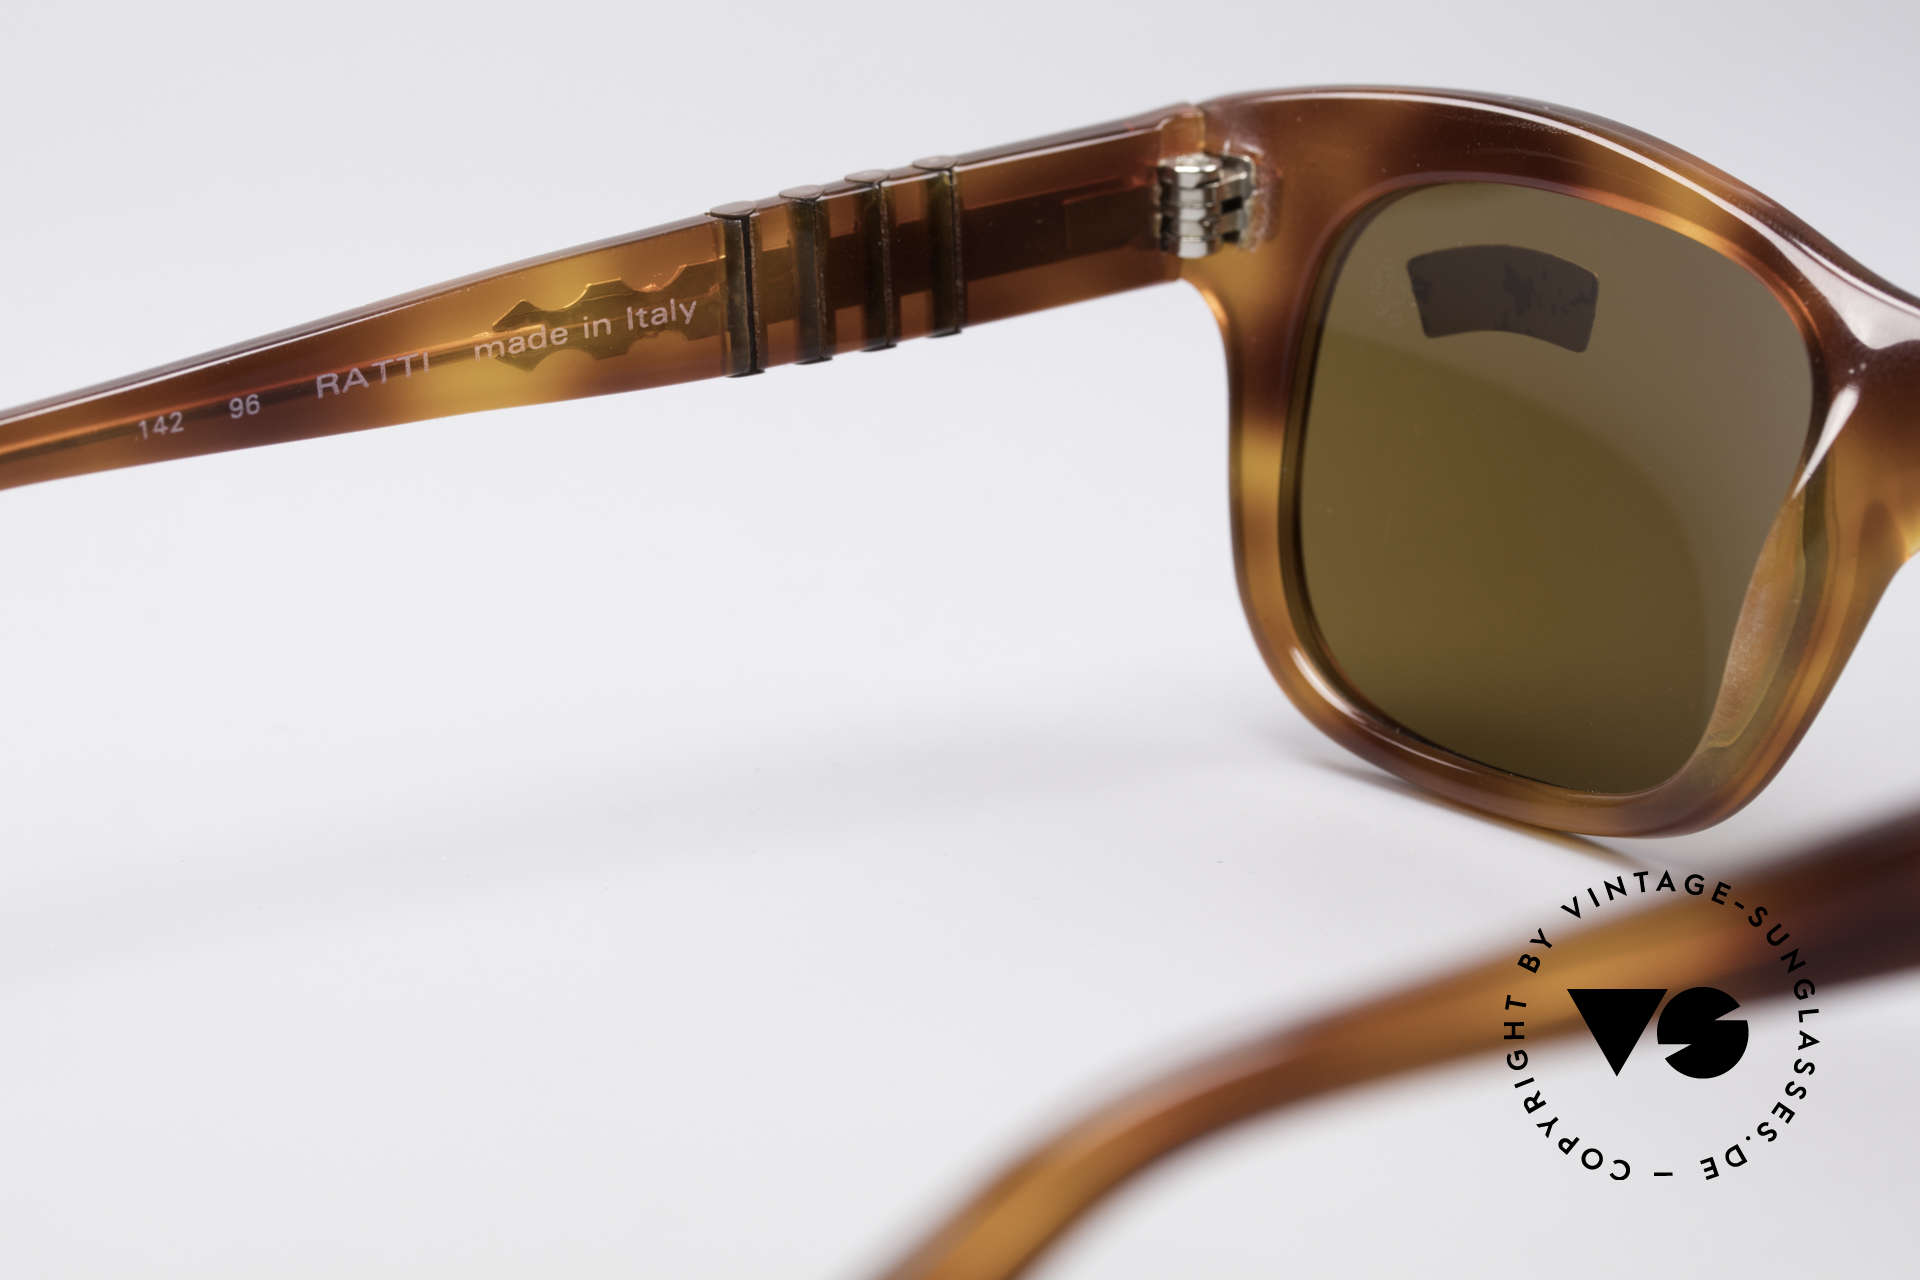 Persol 852 Ratti True Vintage 80's Shades, NO RETRO fashion, but an old ORIGINAL from 1987!!, Made for Men and Women